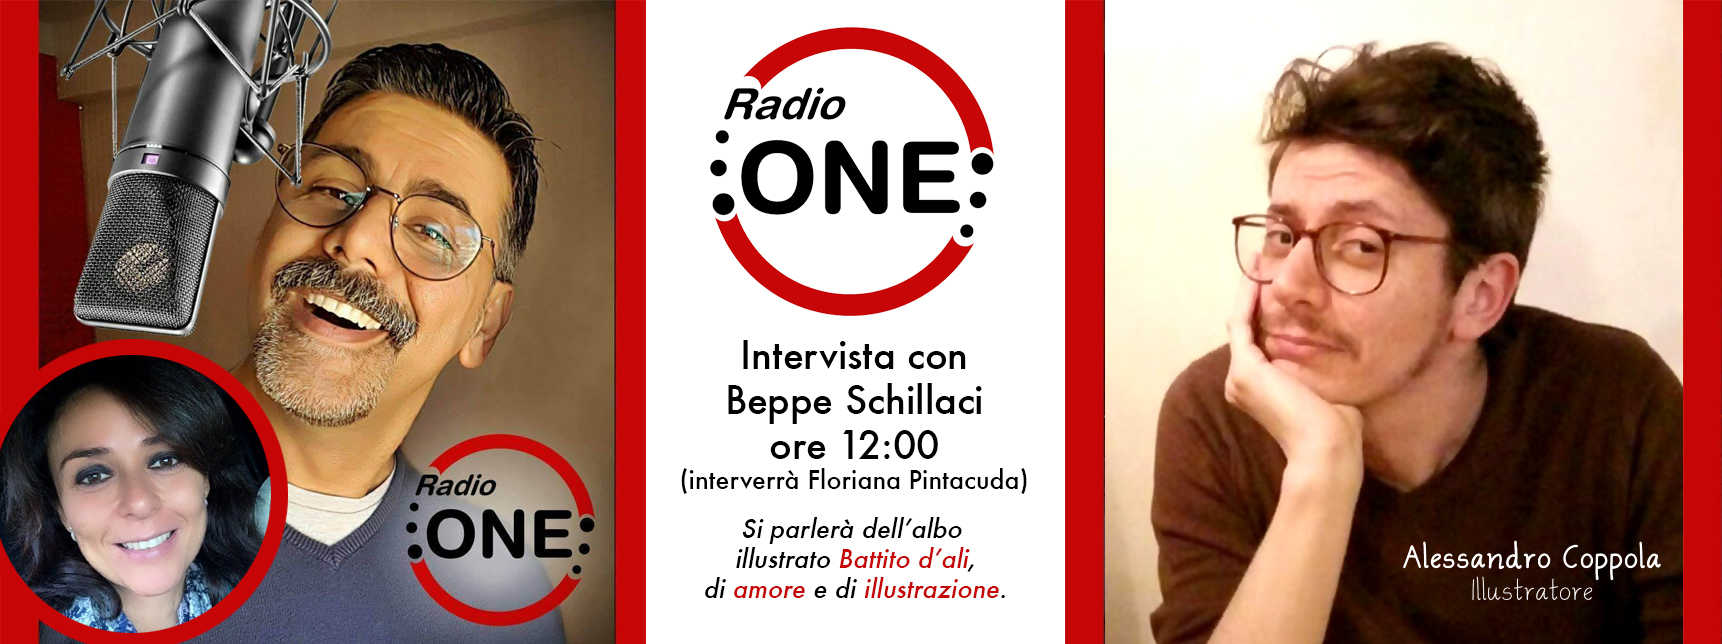 Intervista su Radio One